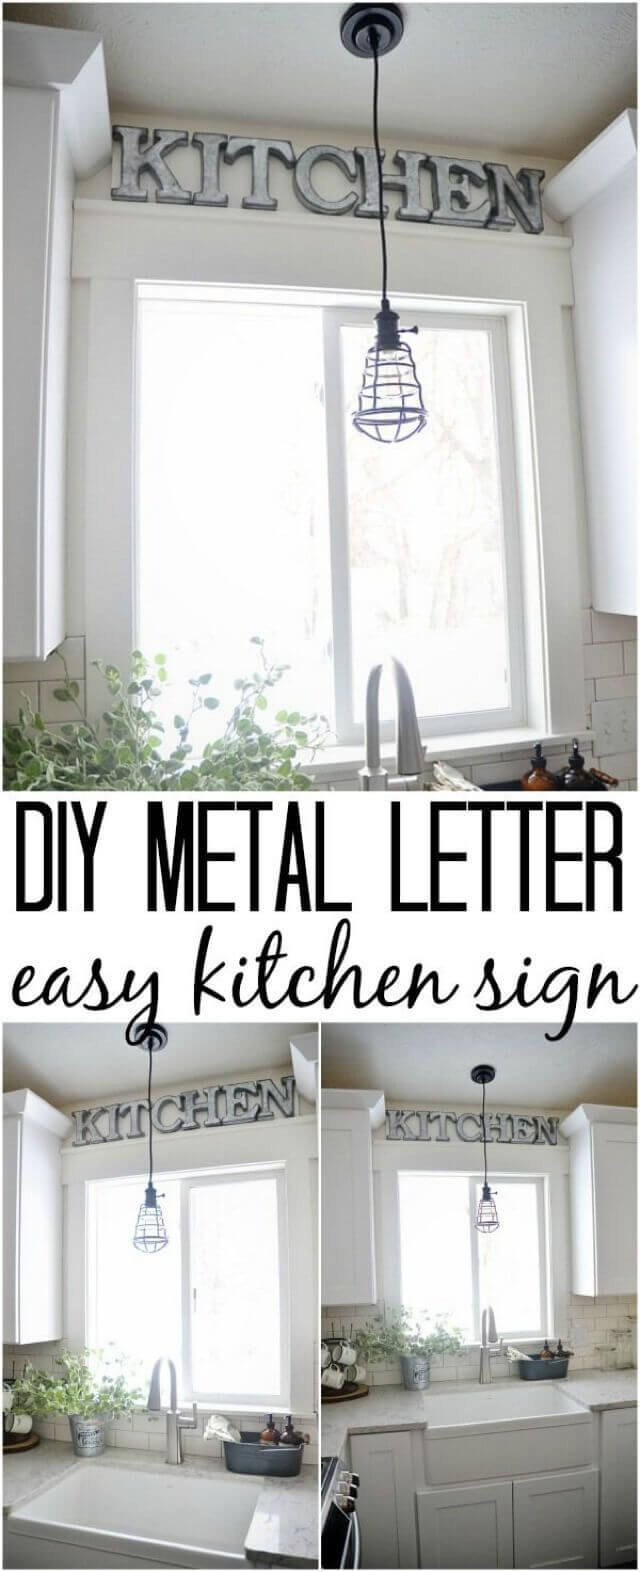 DIY Farmhouse Kitchen Decor Projects with Metal Letters